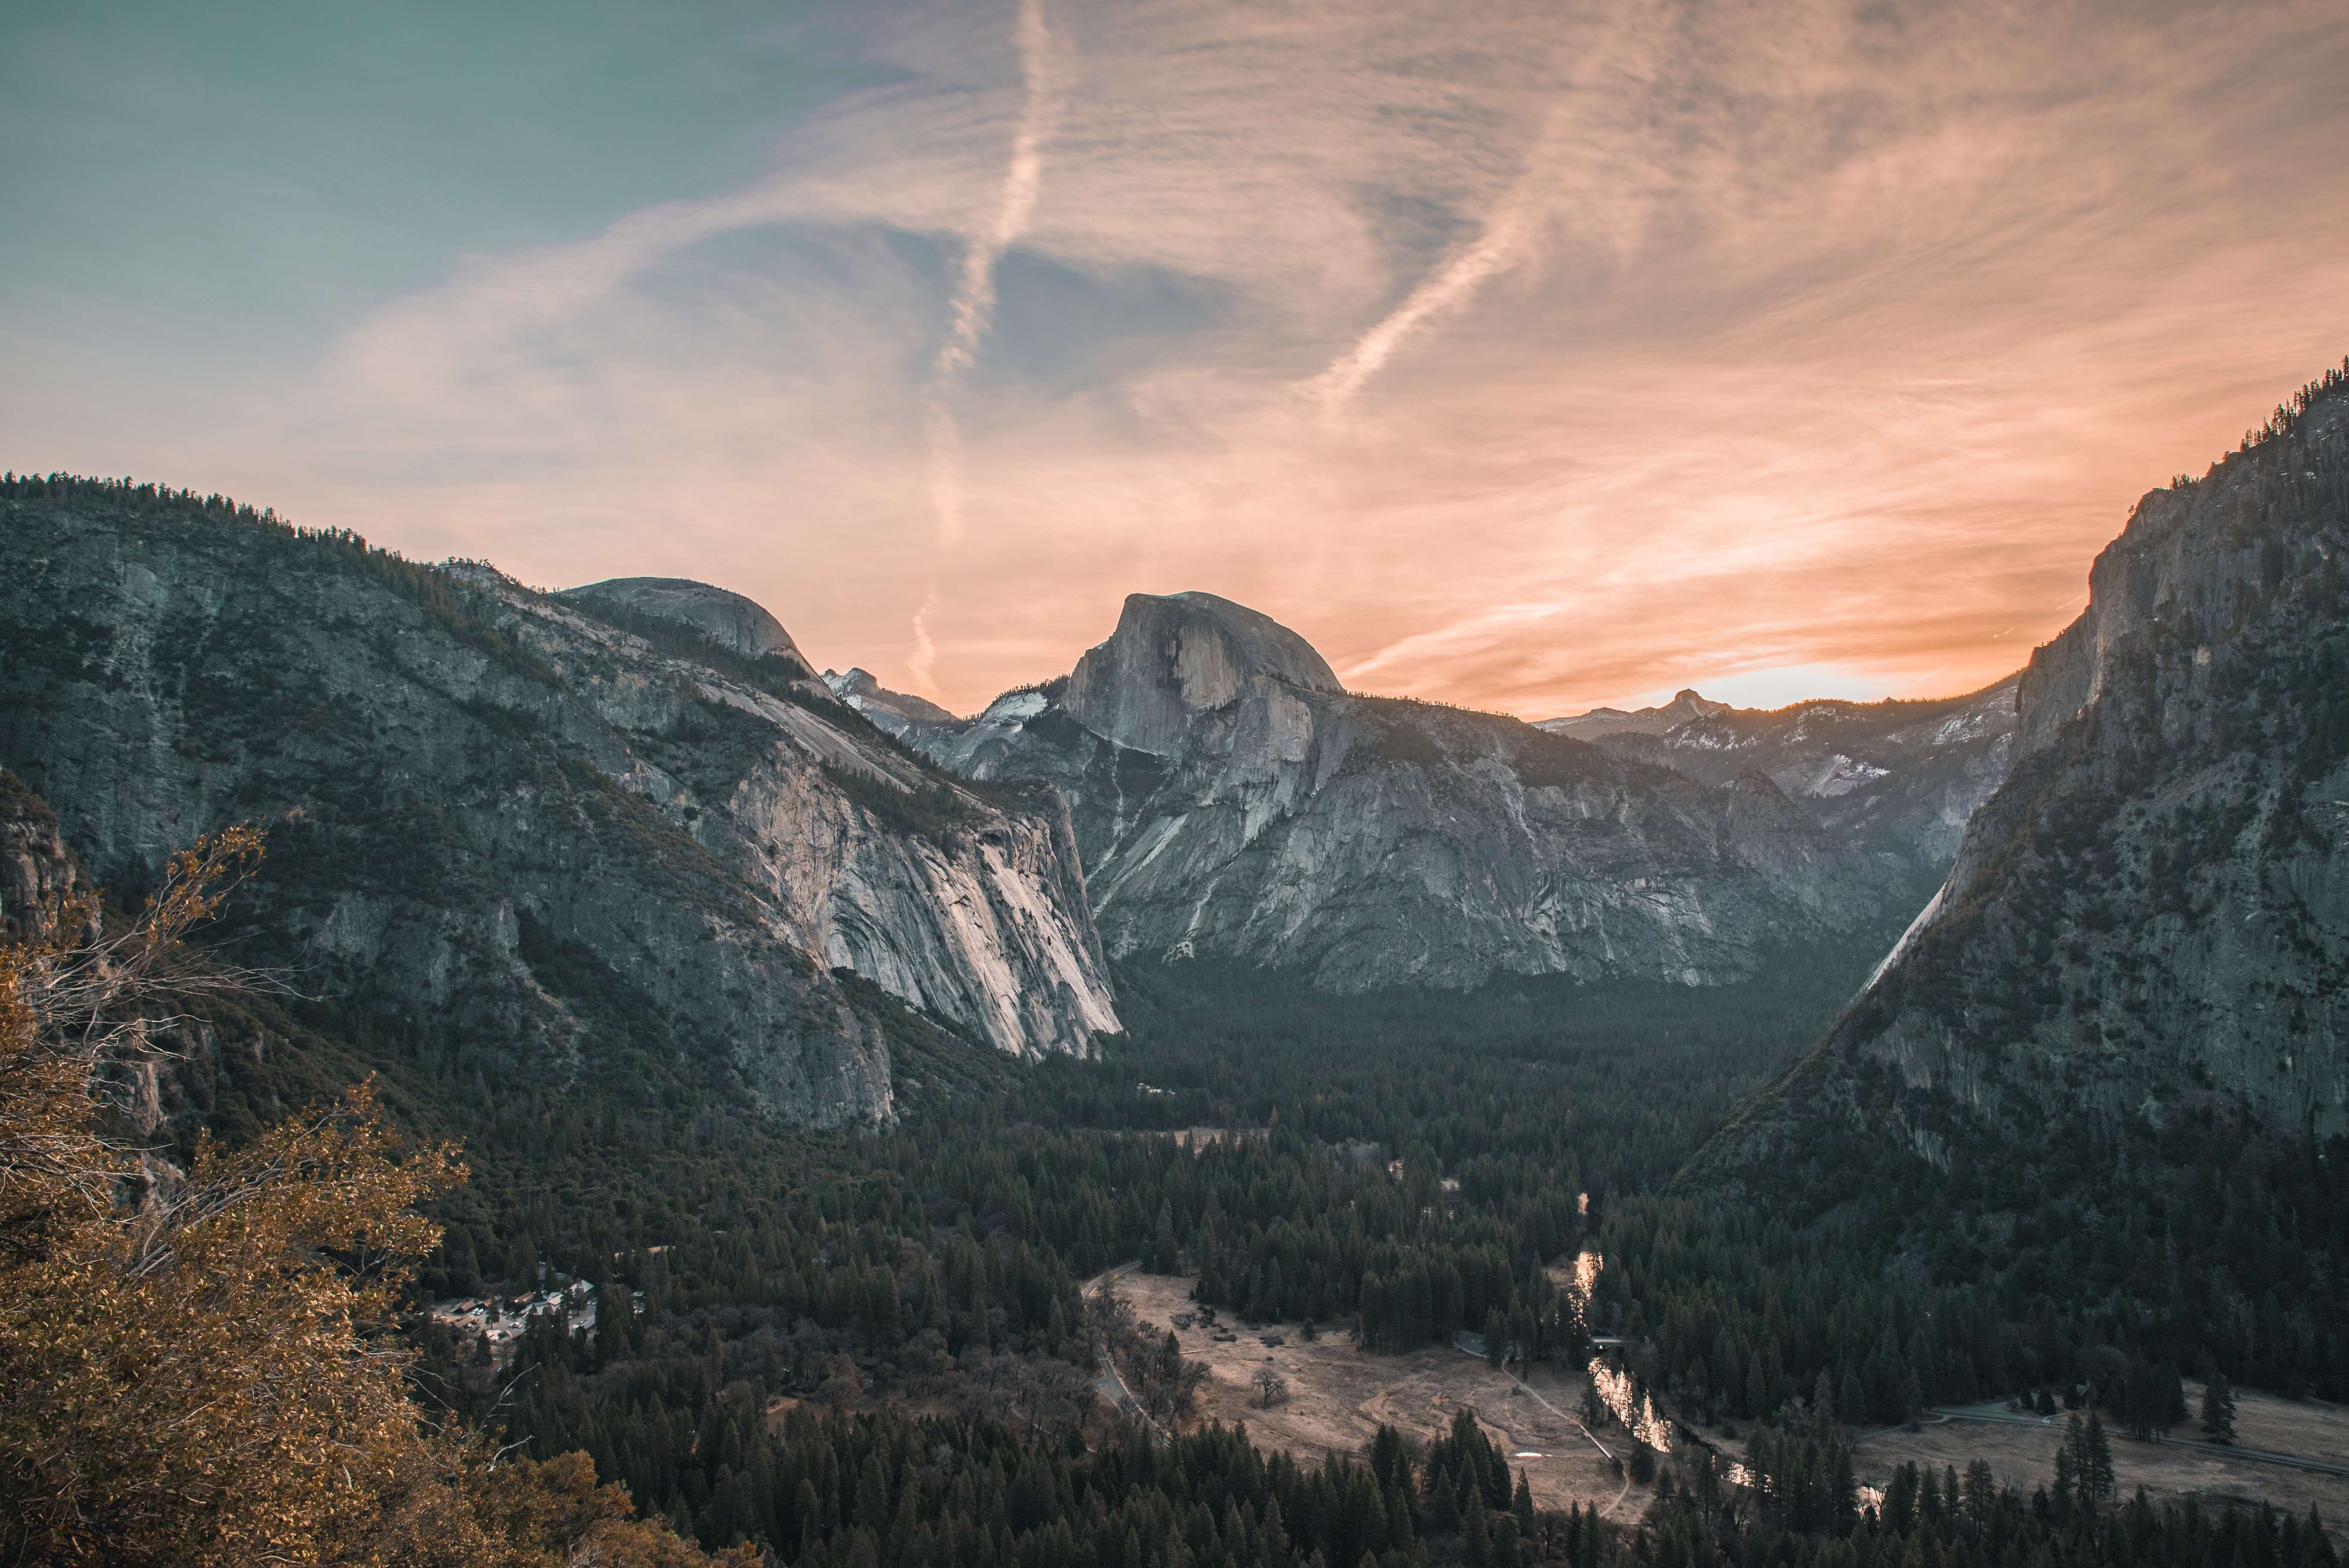 mountains surrounded by trees during golden hour